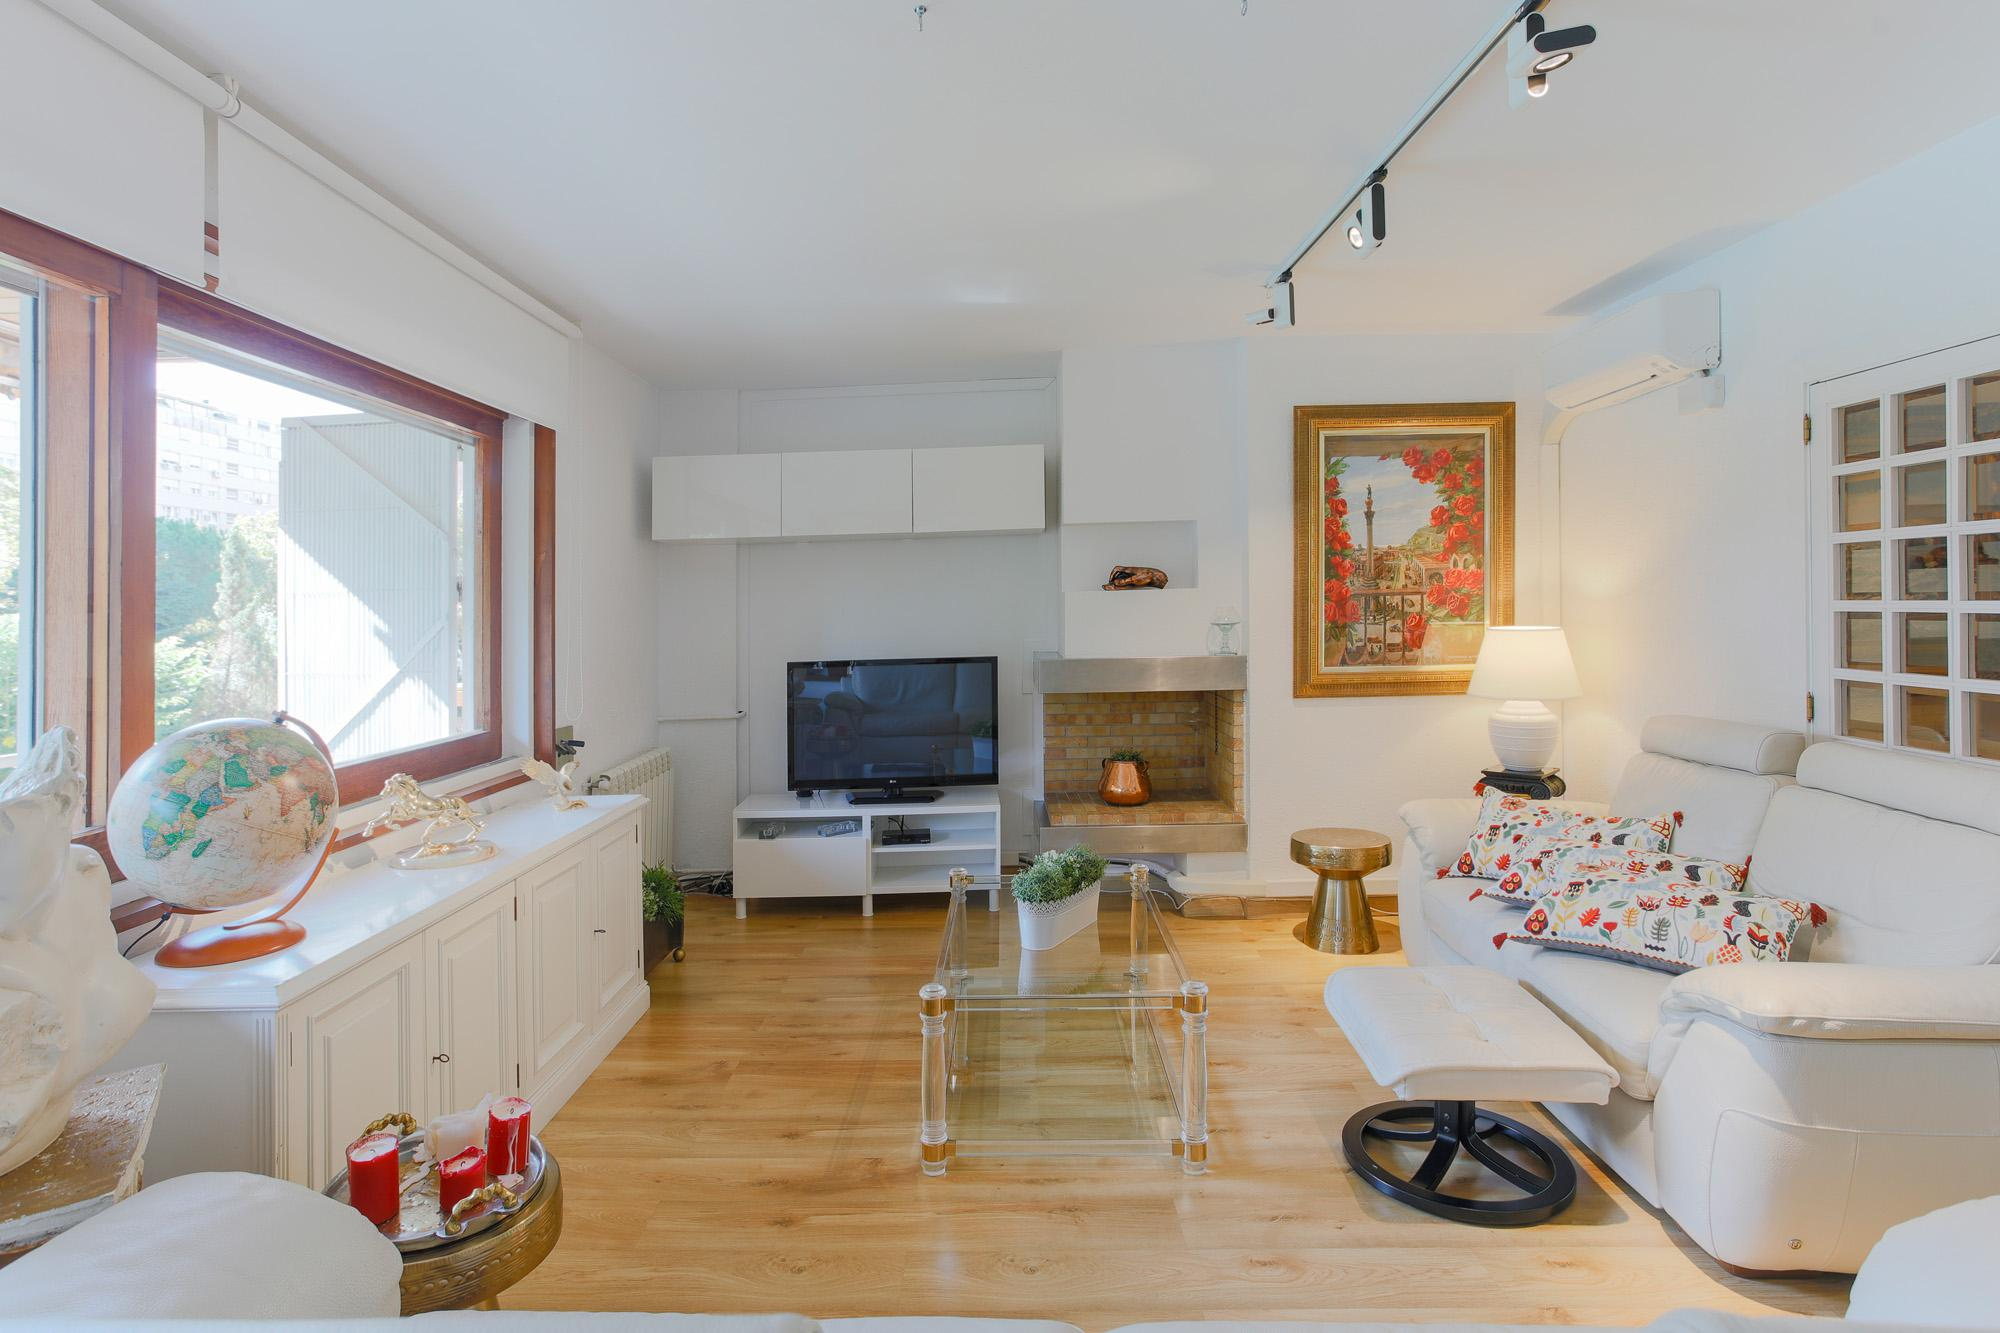 232863 Apartment for sale in Les Corts, Pedralbes 11